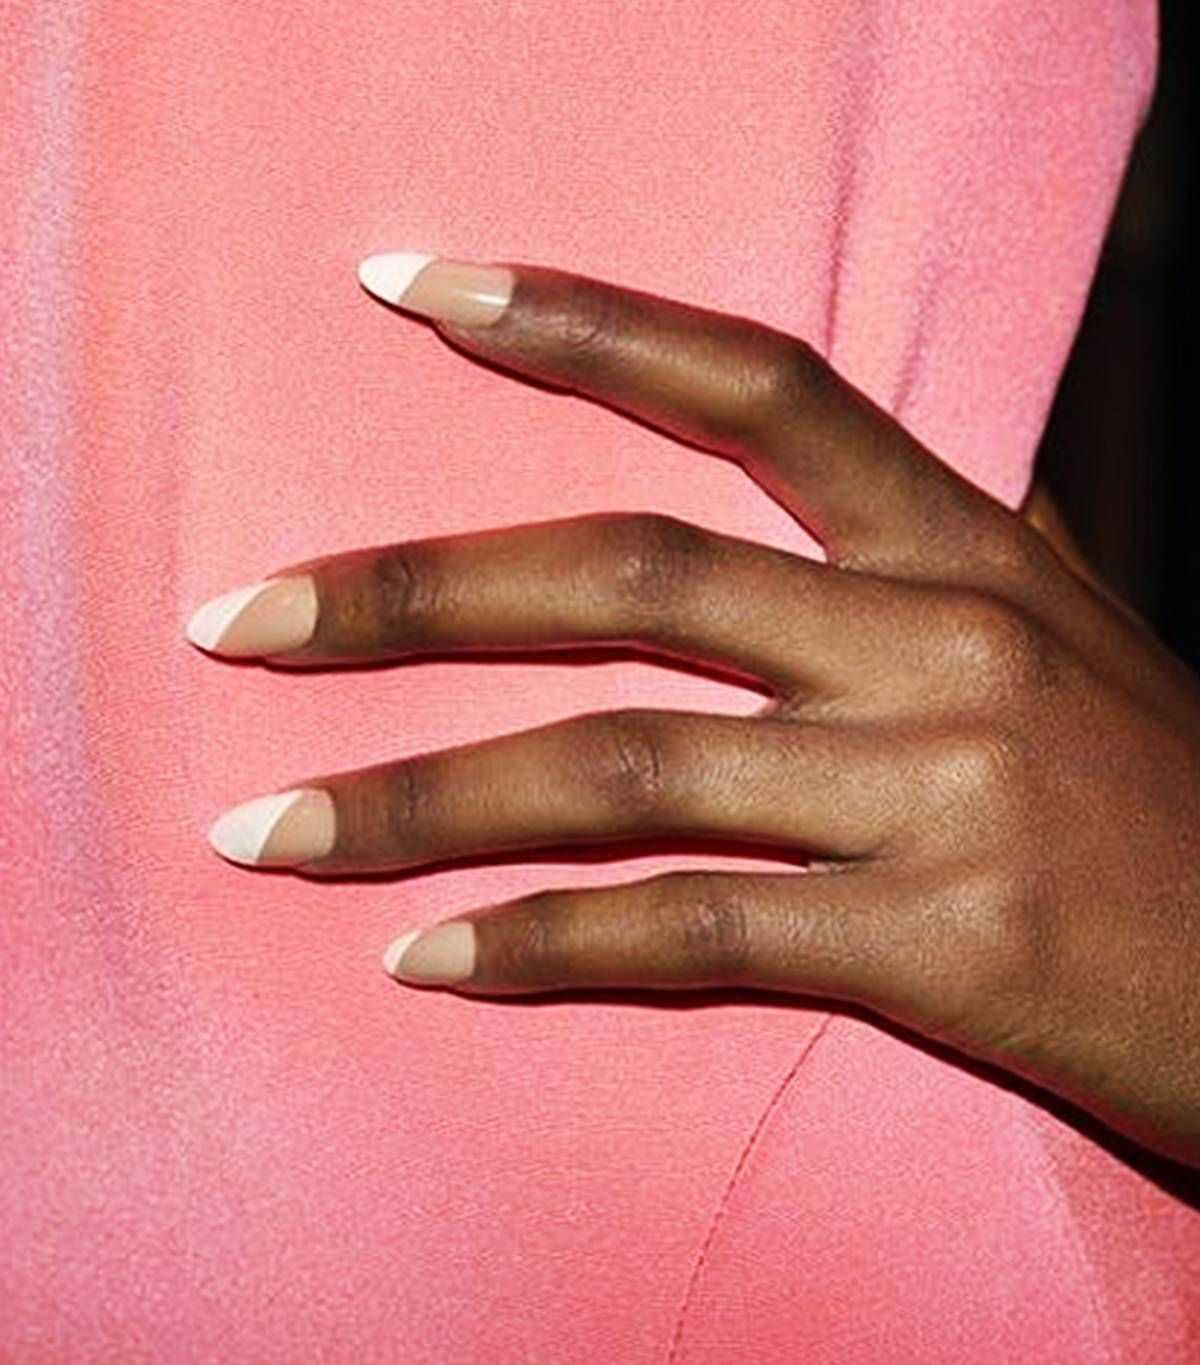 15 Nail Colors That Look Especially Amazing On Dark Skin Tones Beige Nails Colors For Dark Skin Dark Skin Nail Color